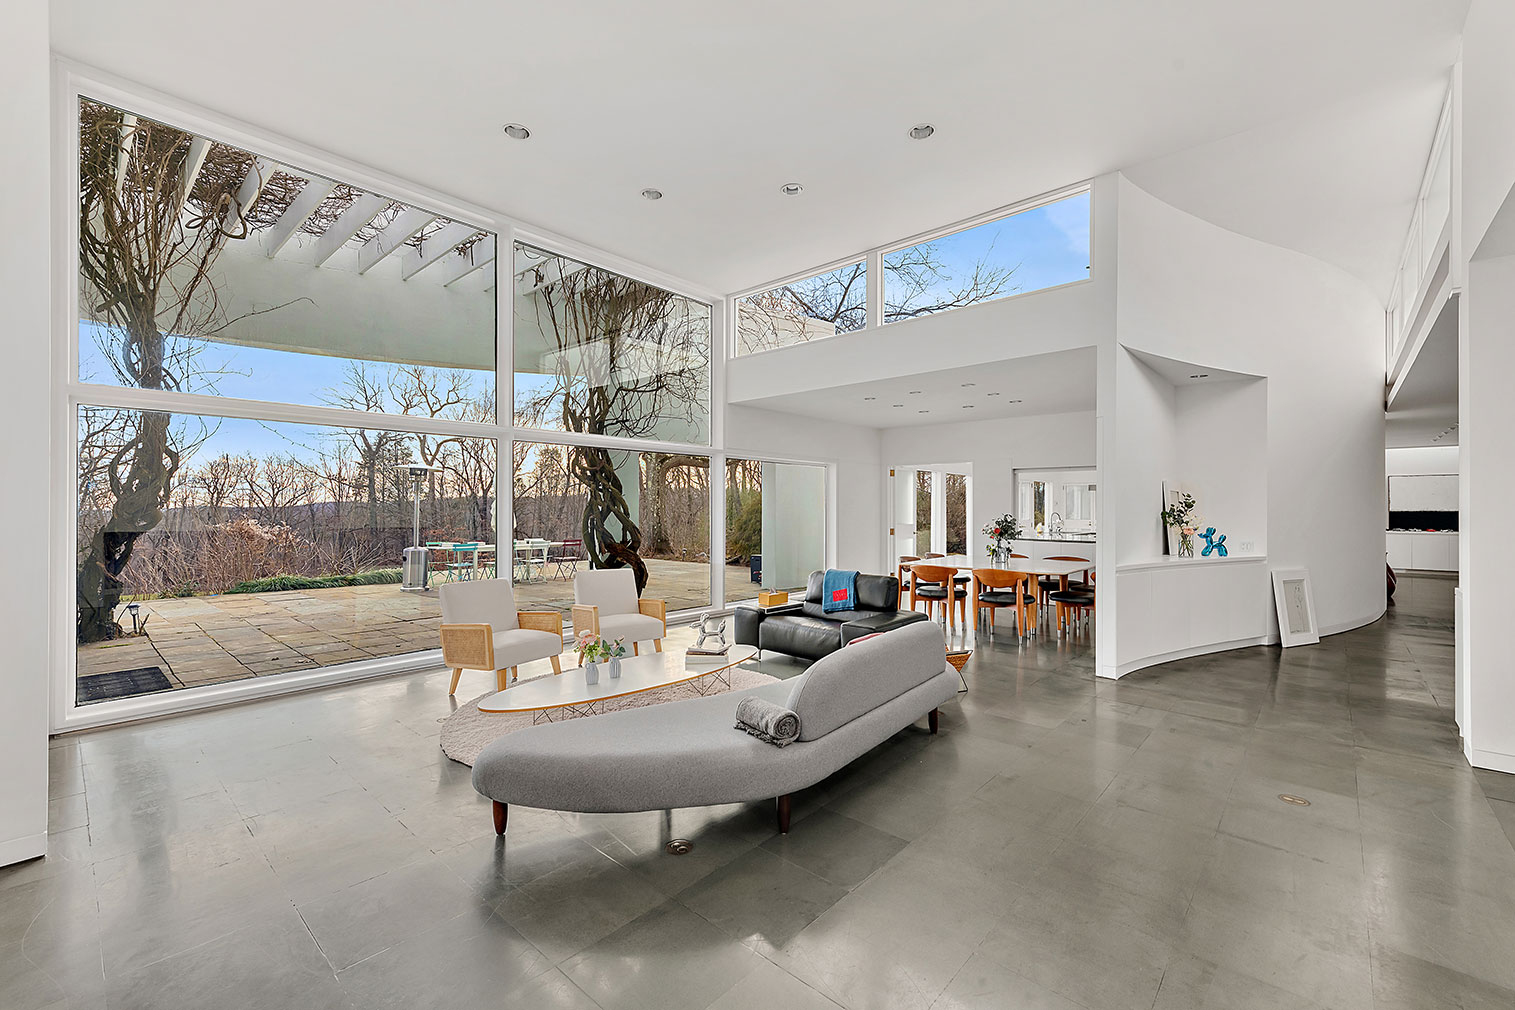 Award-winning Postmodern New York home by Robert A M Stern lists for $2.75m